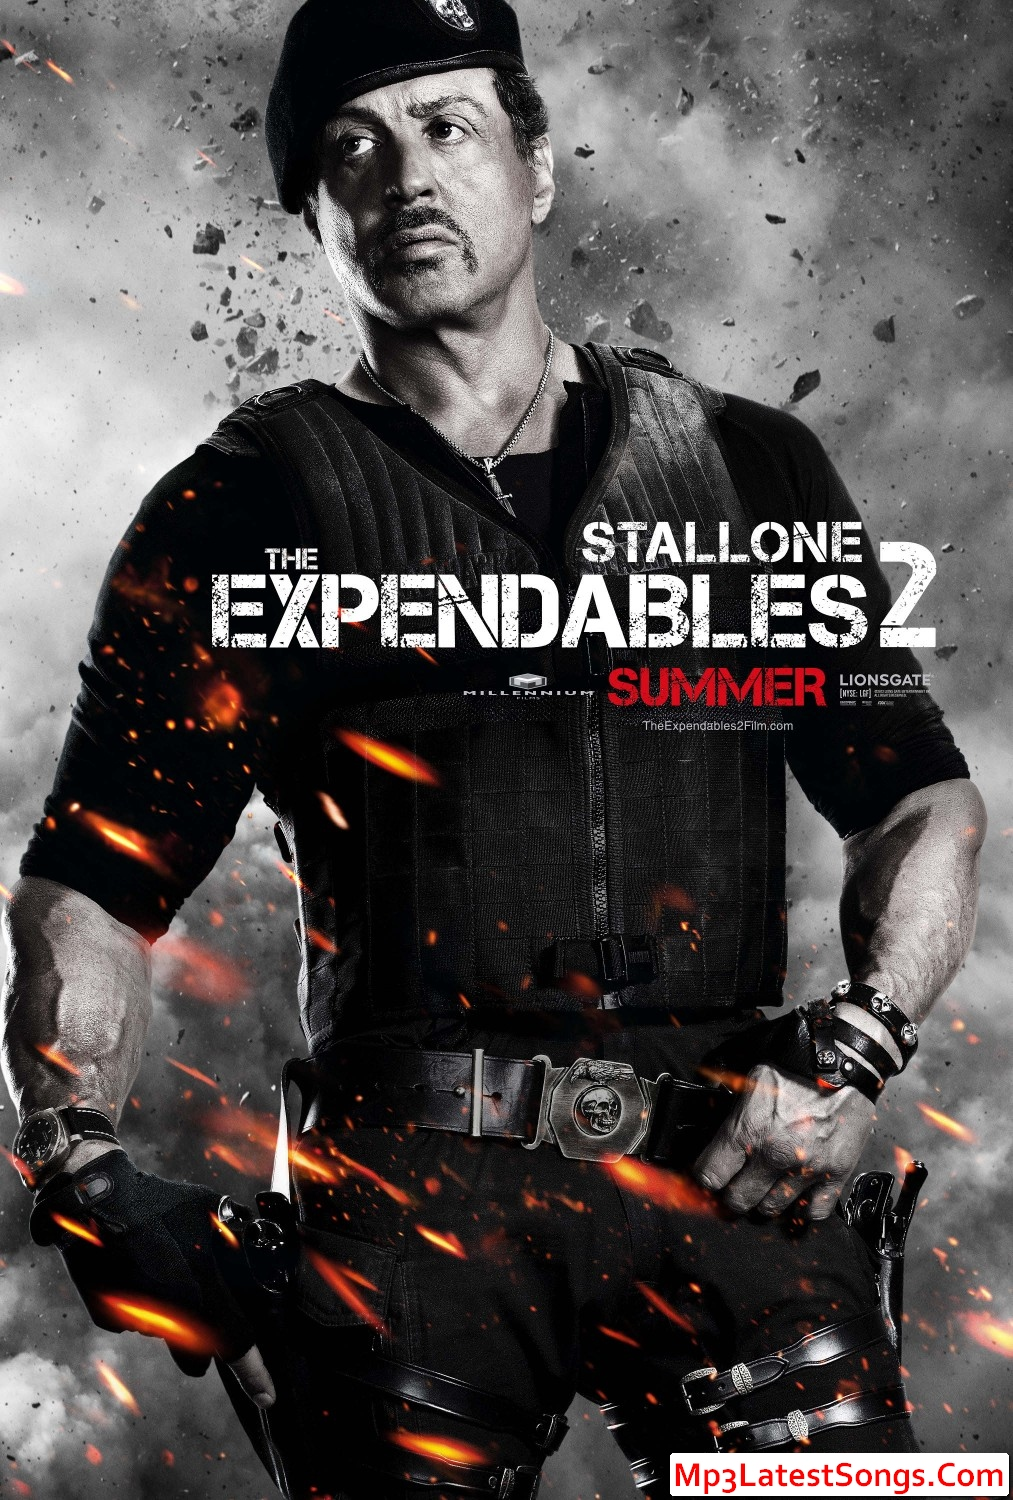 ... Songs SongsBlasts: Watch The Expendables 2 Free Online Movies 2012